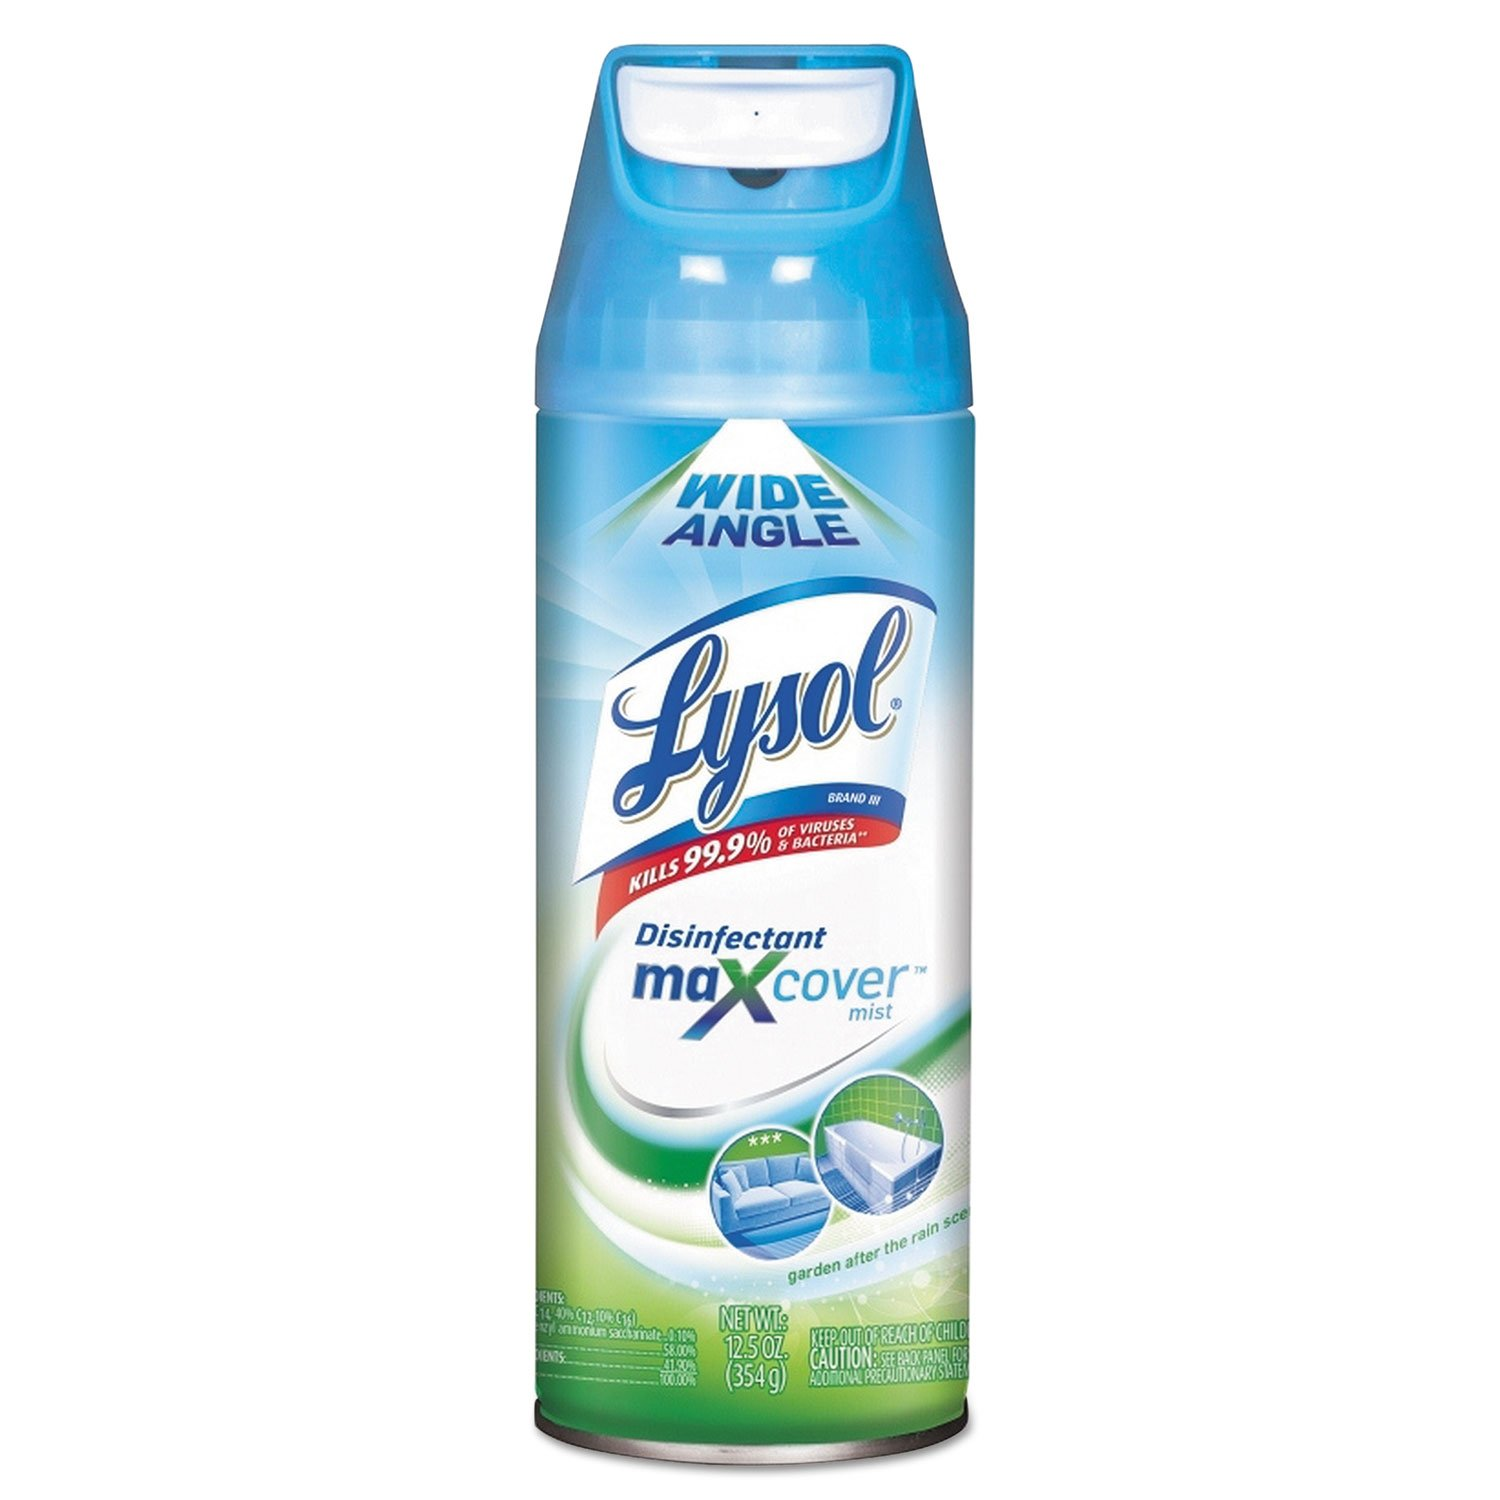 Lysol Max Cover Disinfectant Mist - Garden After Rain 12.5 oz. (Pack of 6)